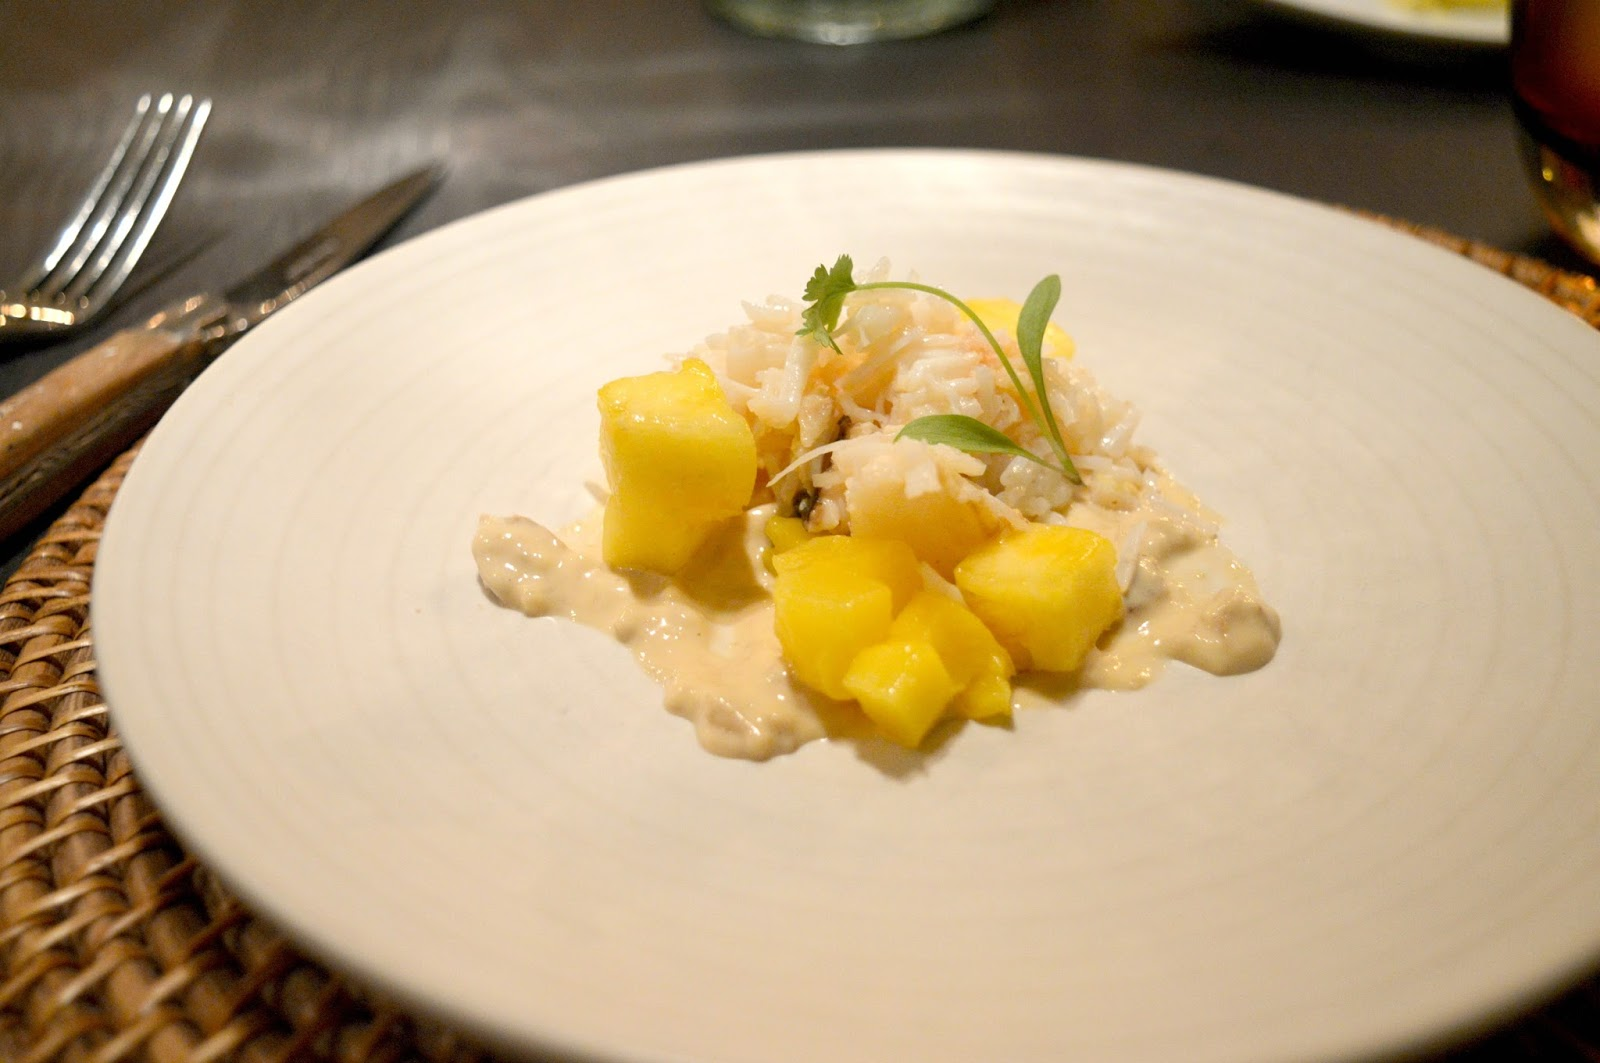 Cosy Hotel in the Cotswolds - The Painswick Crab Salad